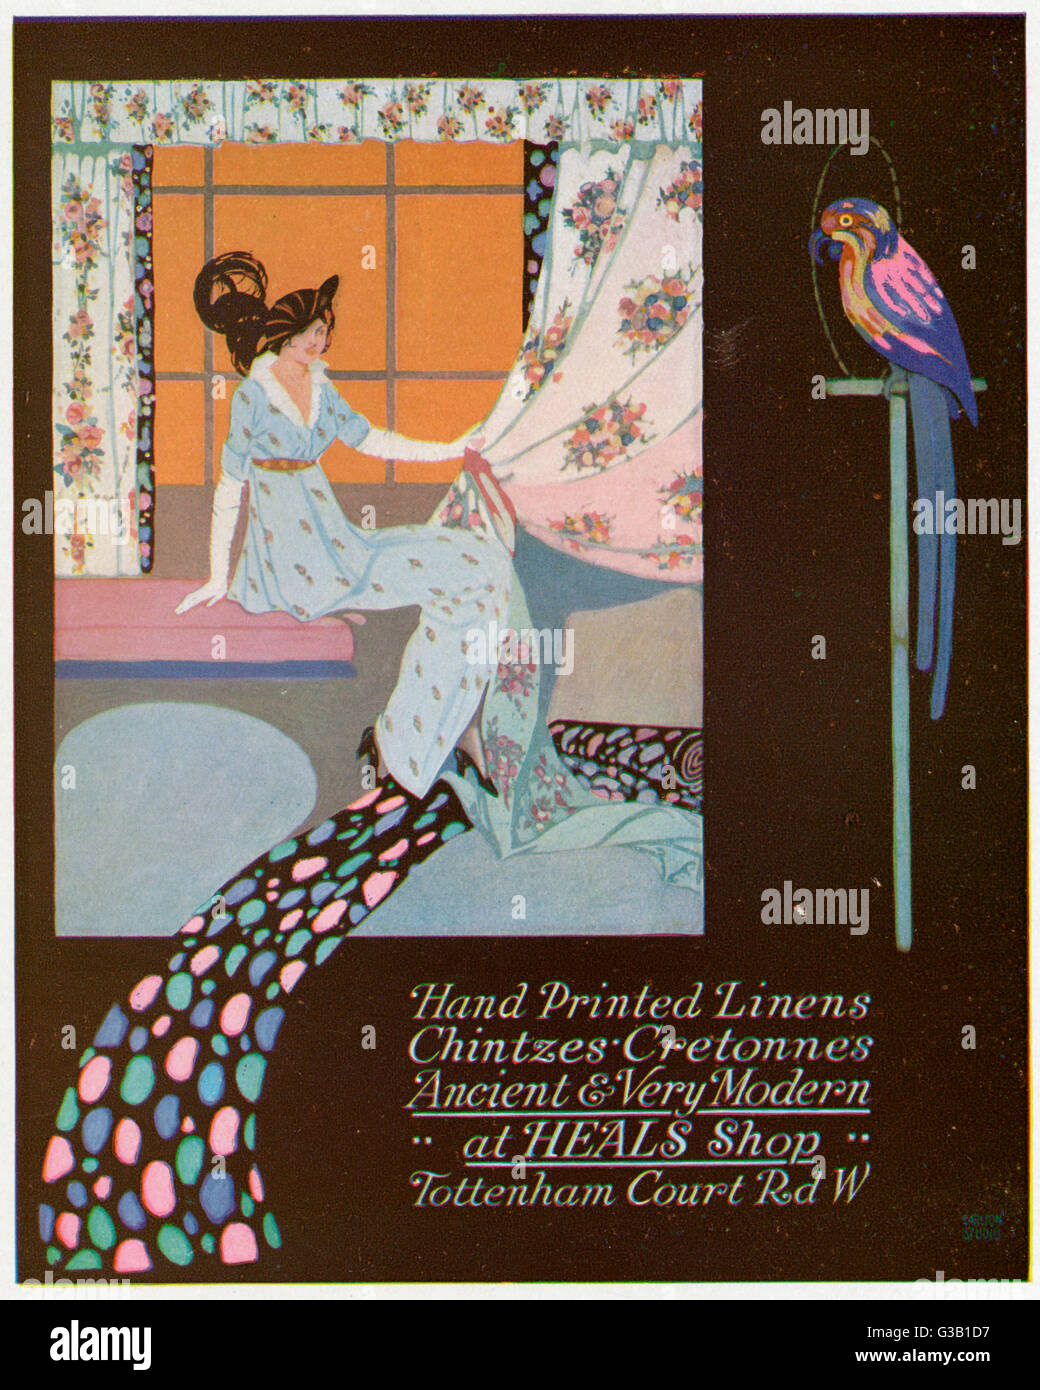 Heal's hand-printed linens,  chintzes and cretonnes        Date: 1914 - Stock Image